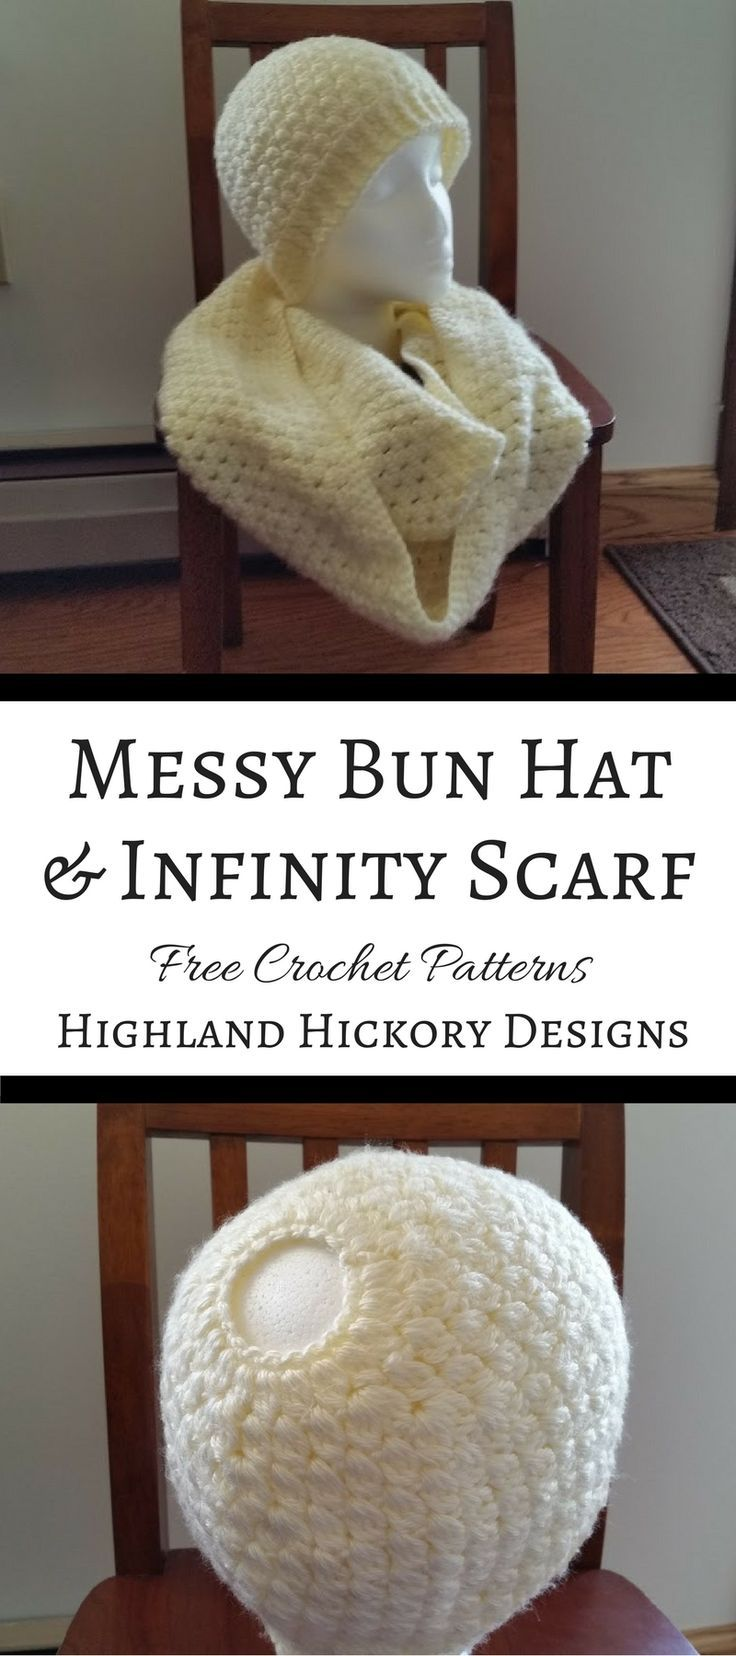 Jess Mess-y Bun Hat - Free Crochet Pattern - Highland Hickory Designs